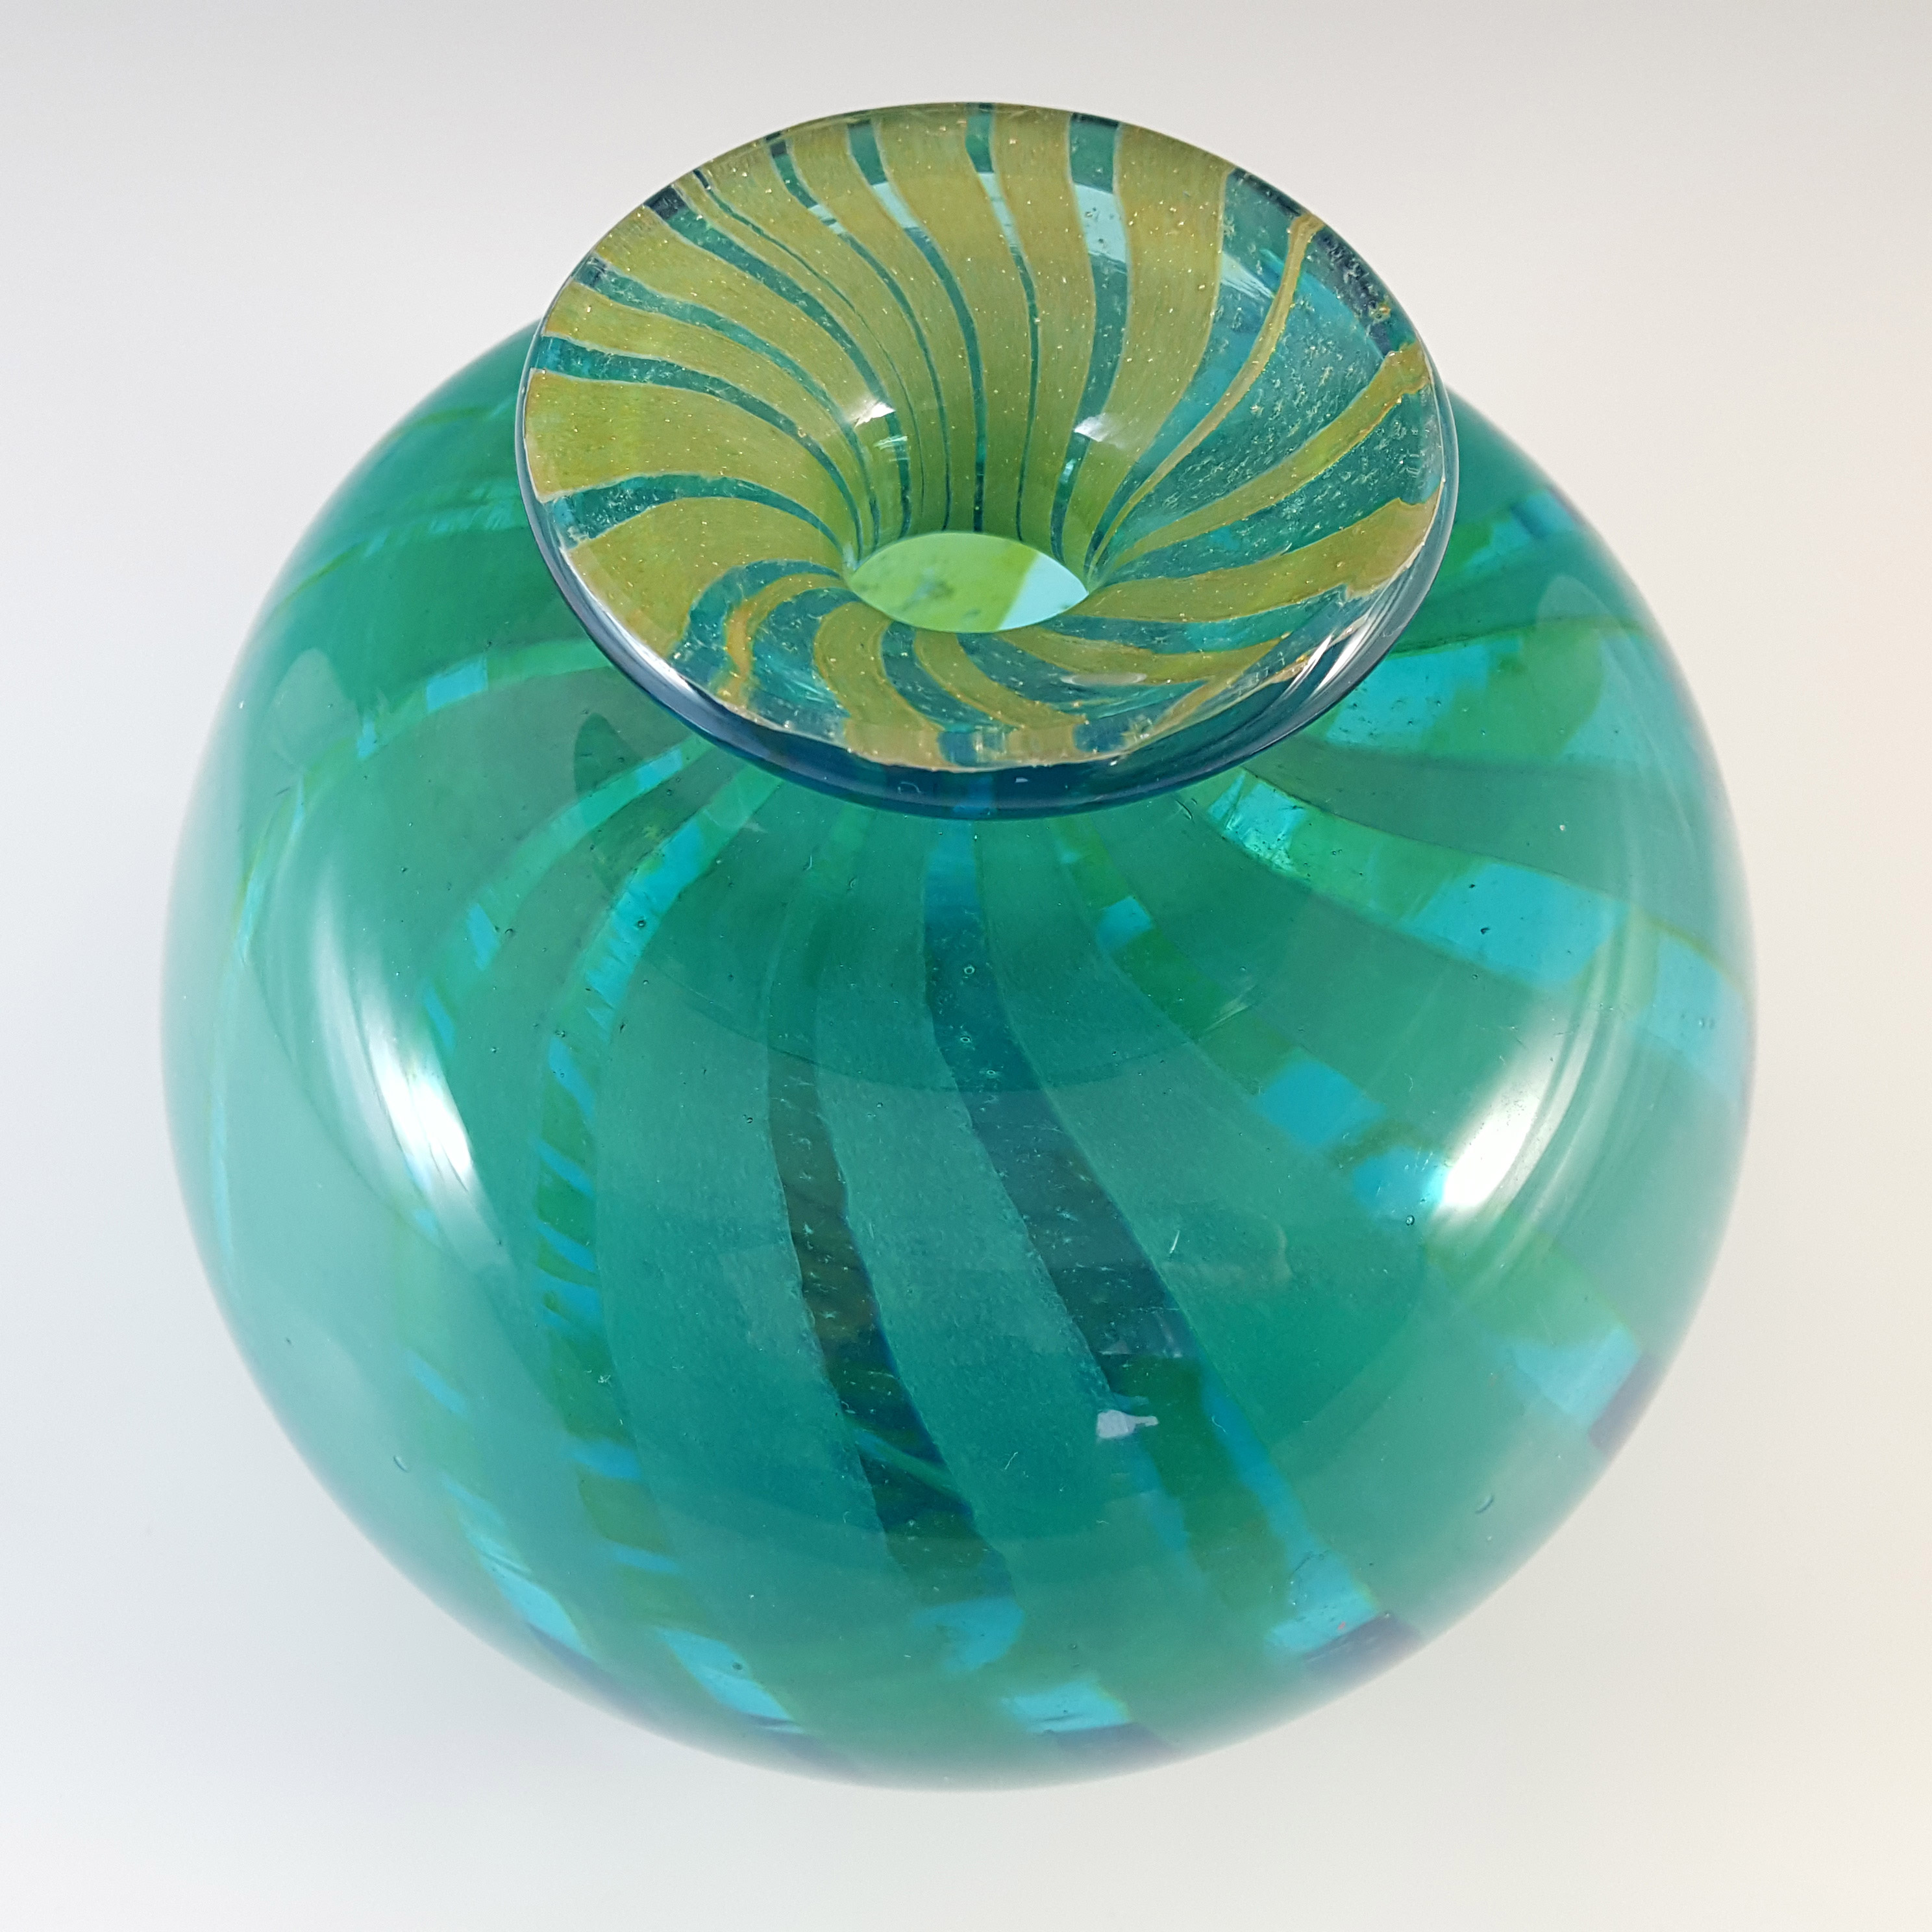 ARTIST SIGNED Mdina Eric Dobson 1975 Glass 'Ming' Globe Vase - Click Image to Close